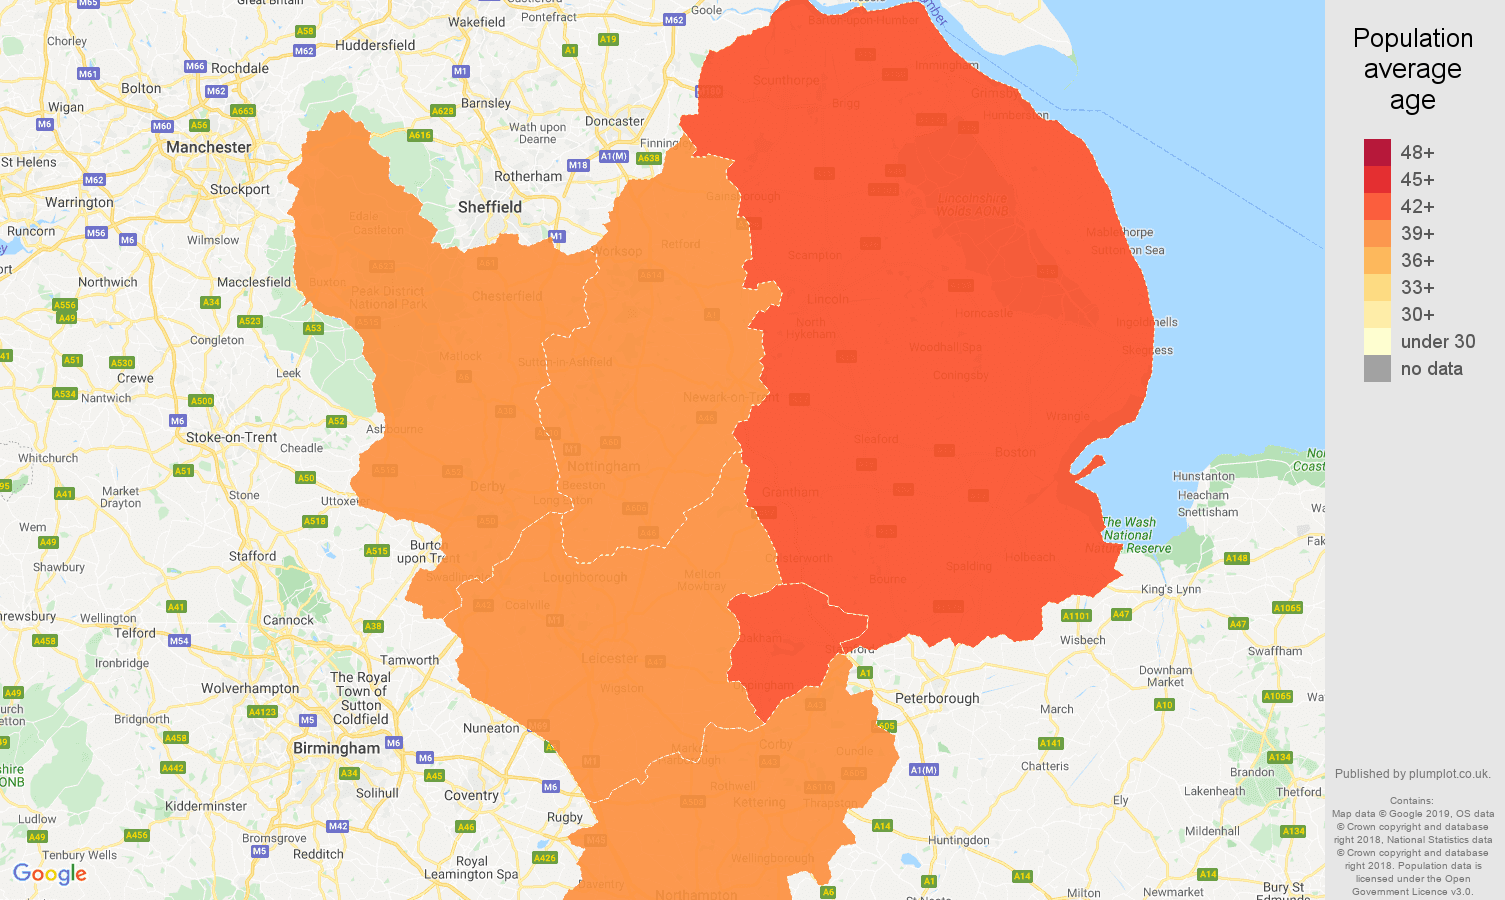 East Midlands population average age map